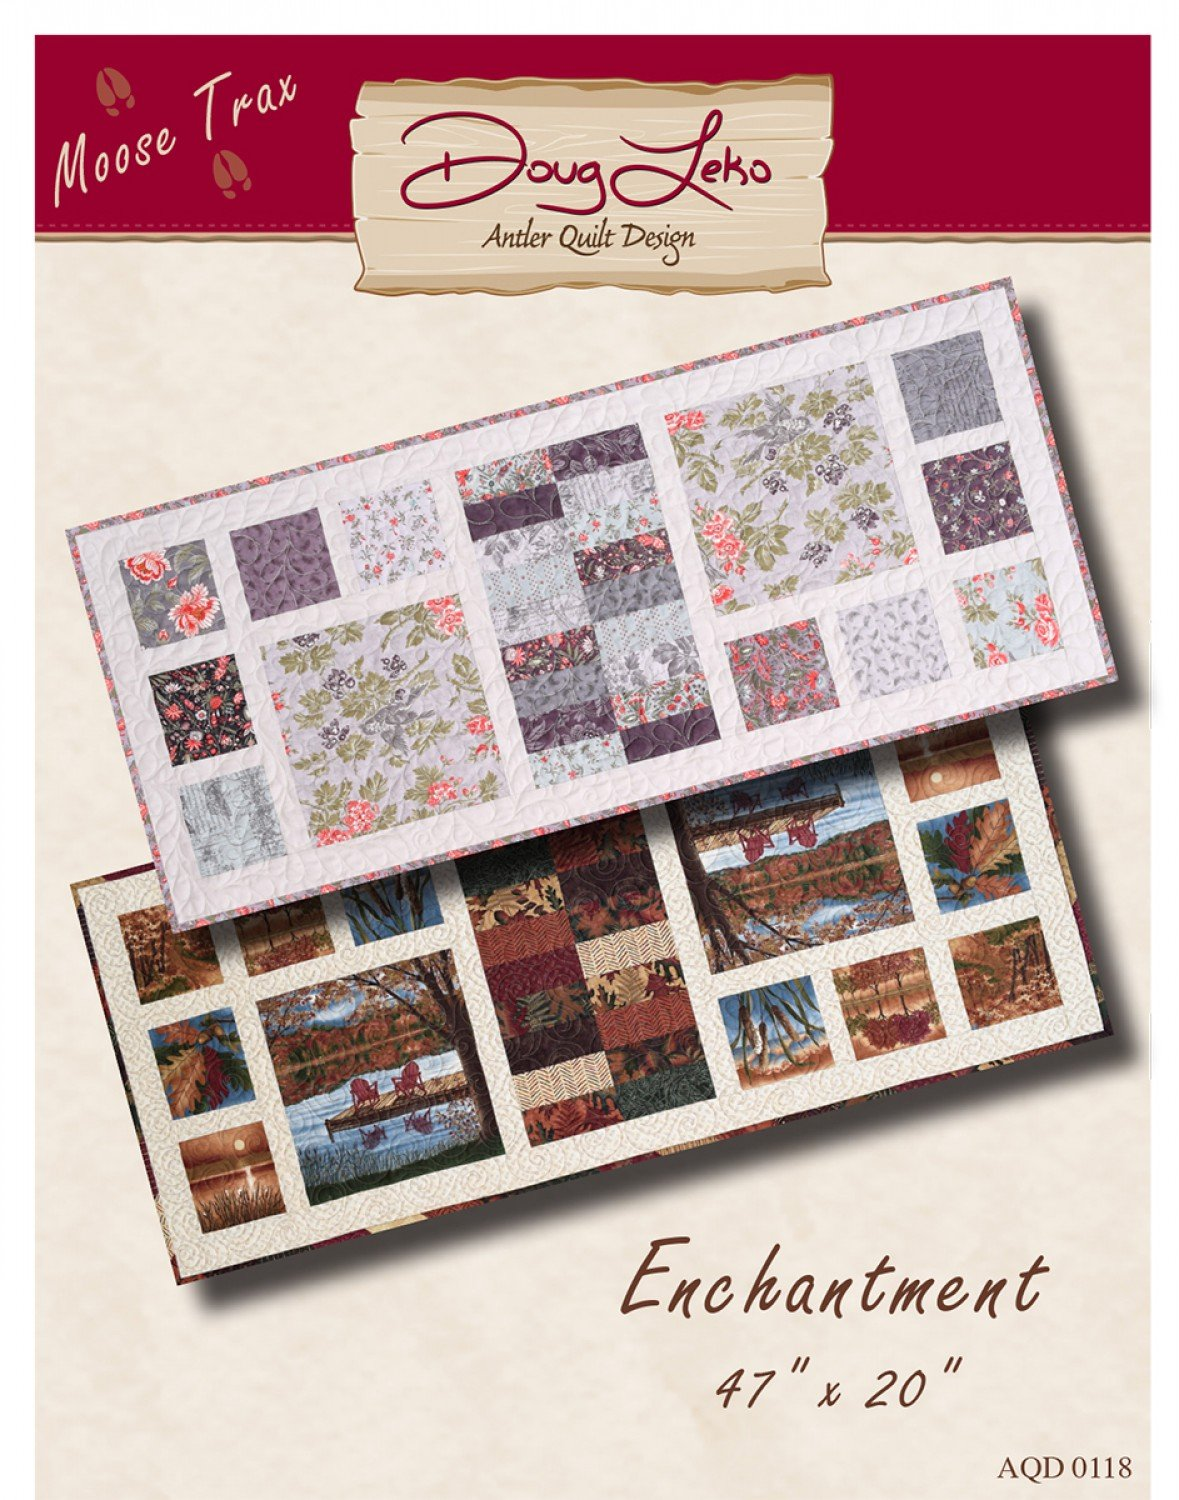 Enchantment Table Runner by Doug Leko for Antler Quilt Designs AQD-0118